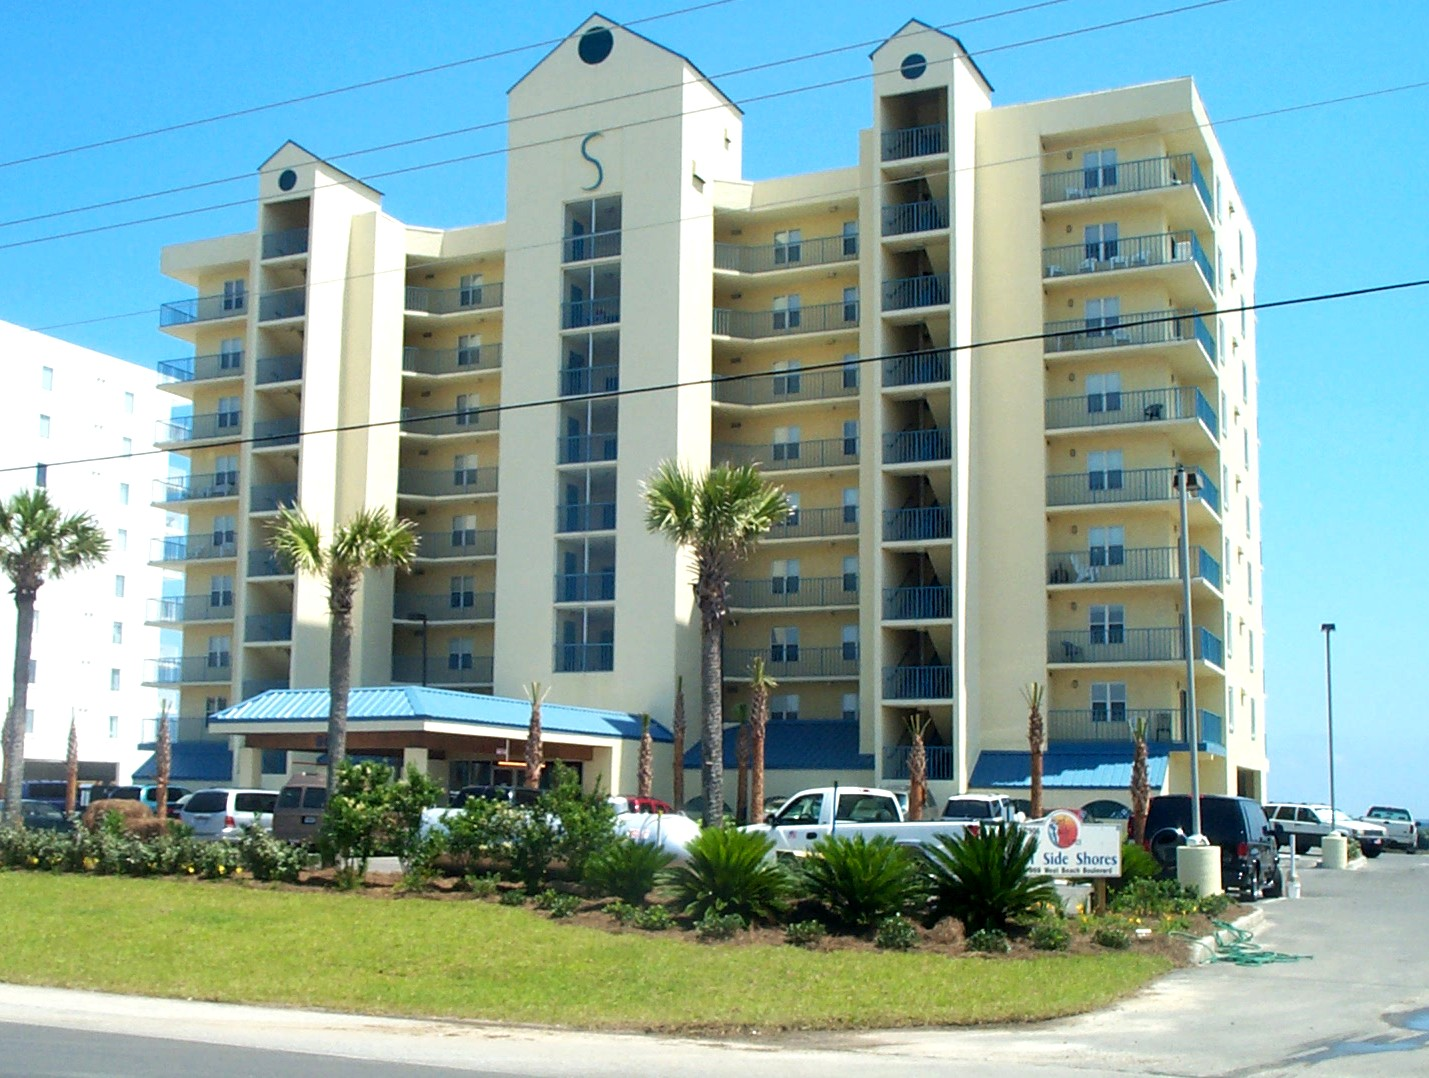 Surfside Shores 2806